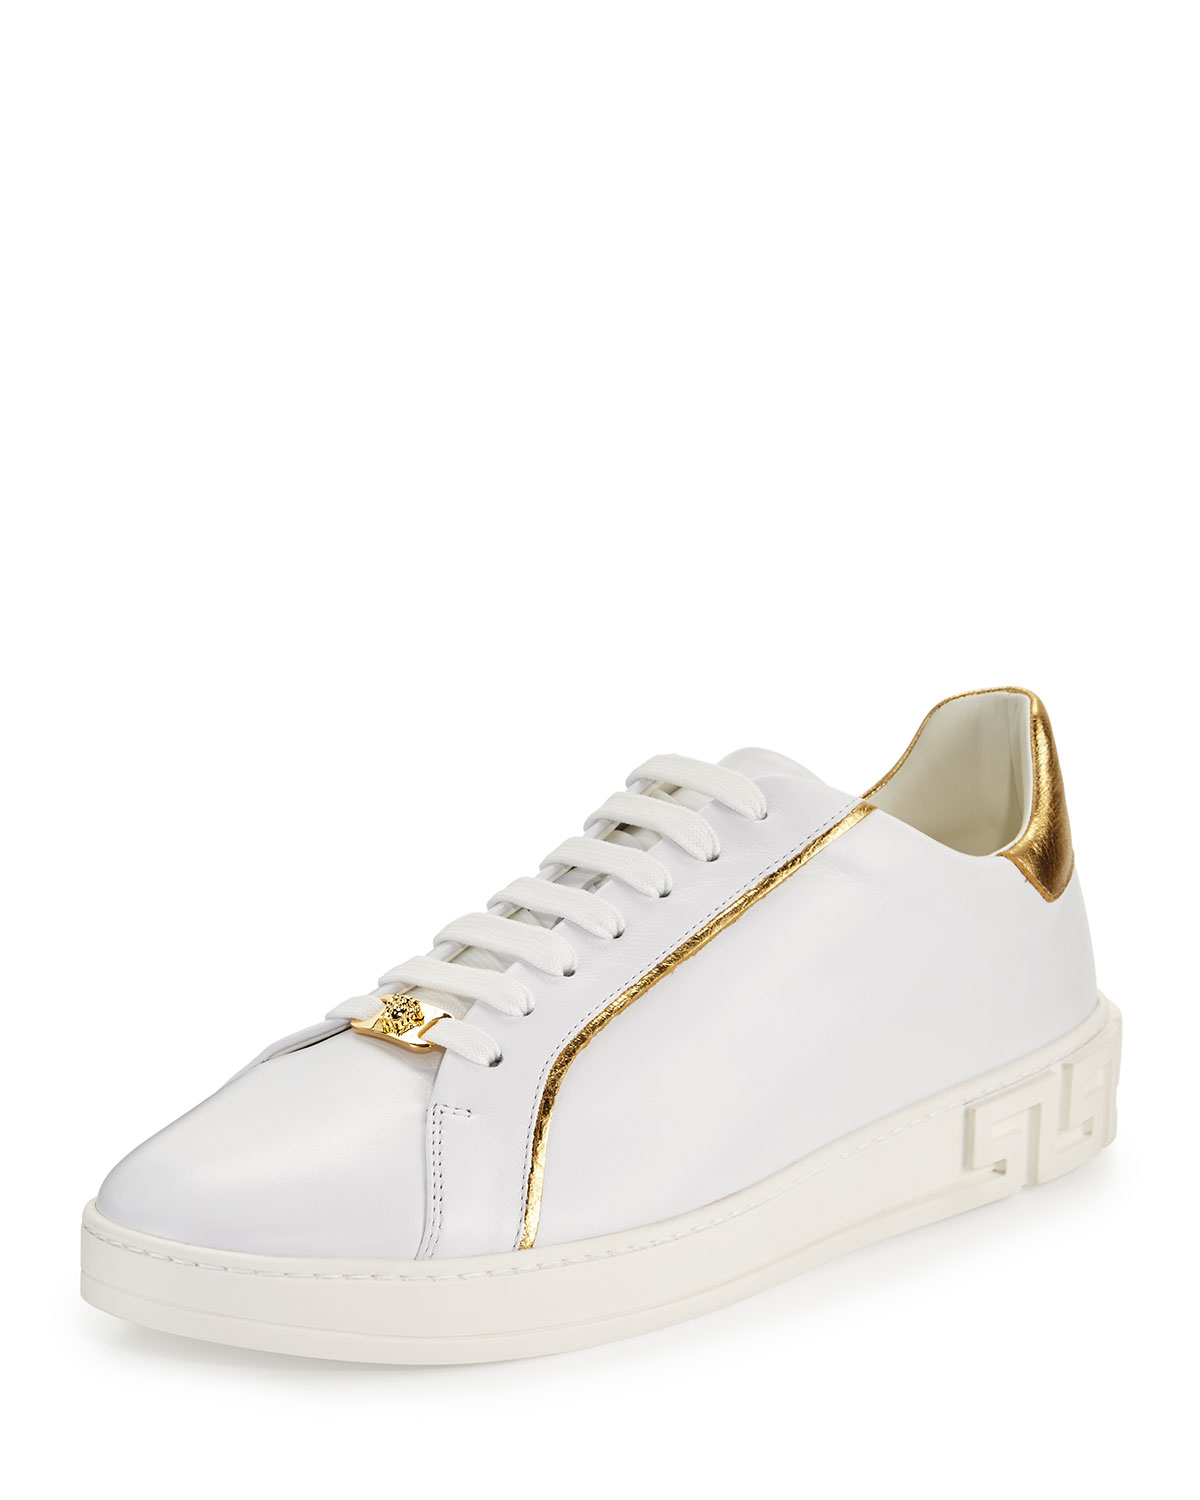 7856ed97332 Versace Men's Golden-Trim Leather Low-Top Sneakers, White | Neiman ...